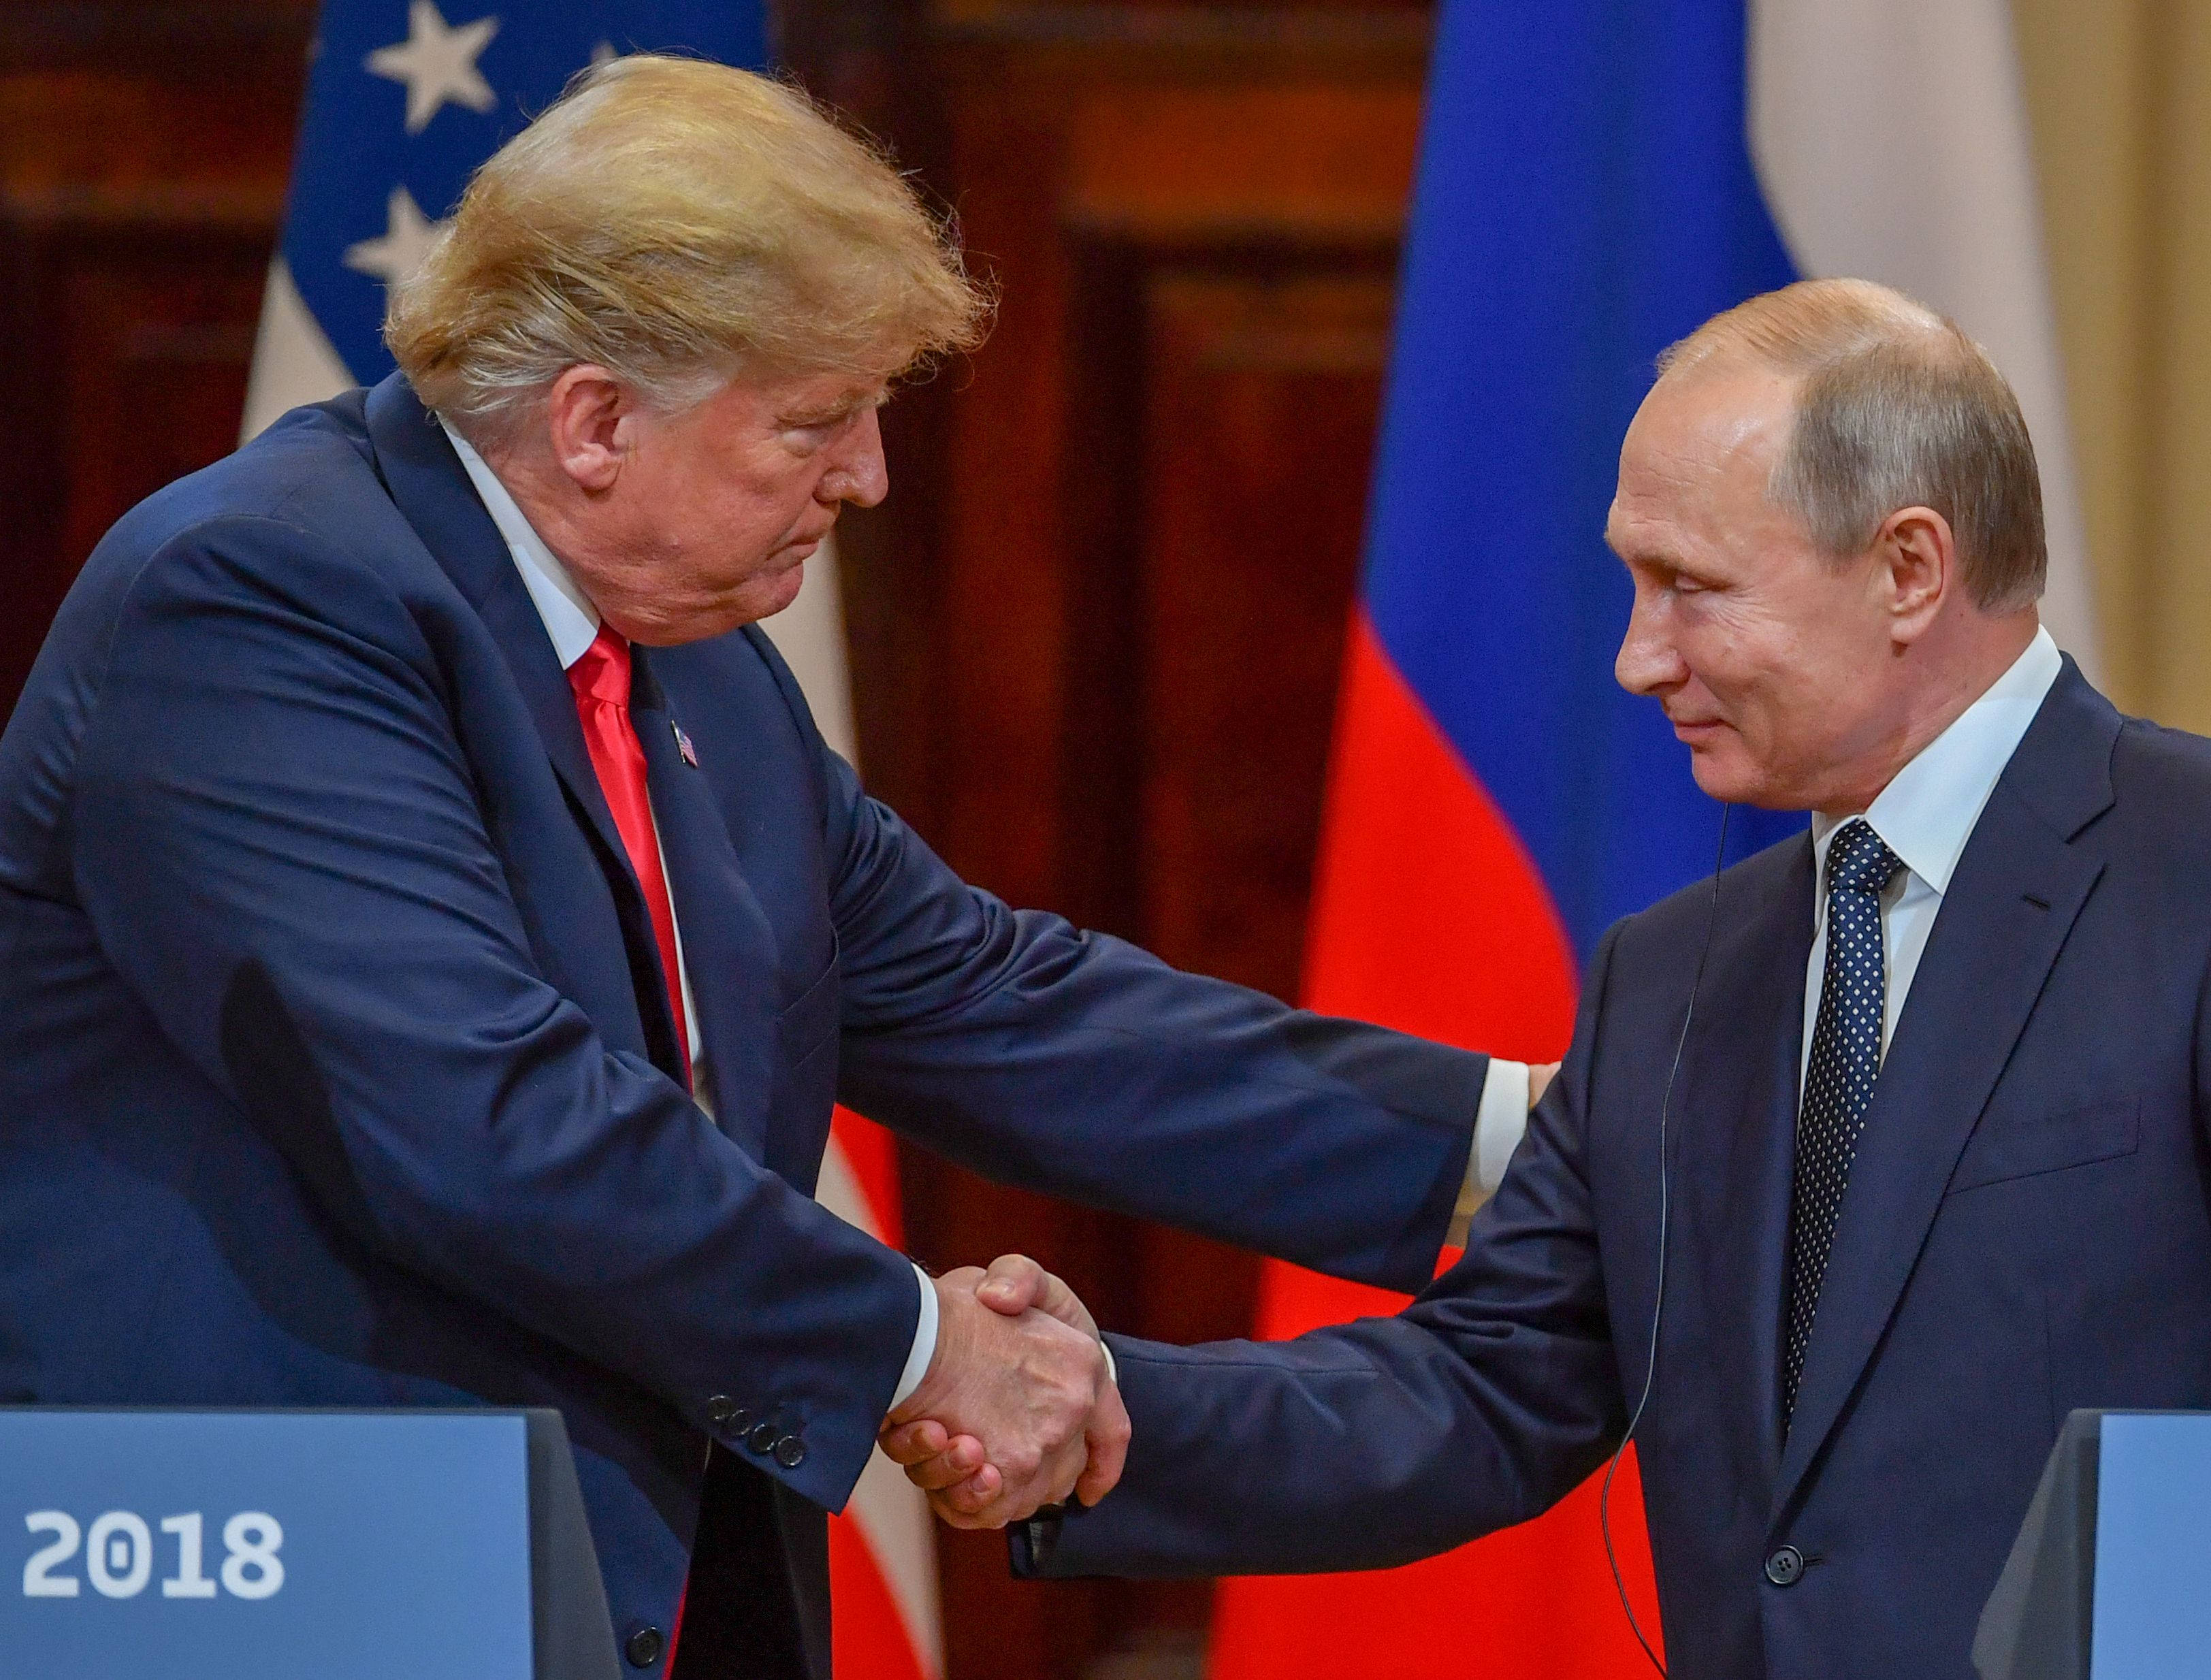 JULY 16 - US President Donald Trump  and Russia's President Vladimir Putin shake hands before attending a joint press conference after a meeting at the Presidential Palace in Helsinki.